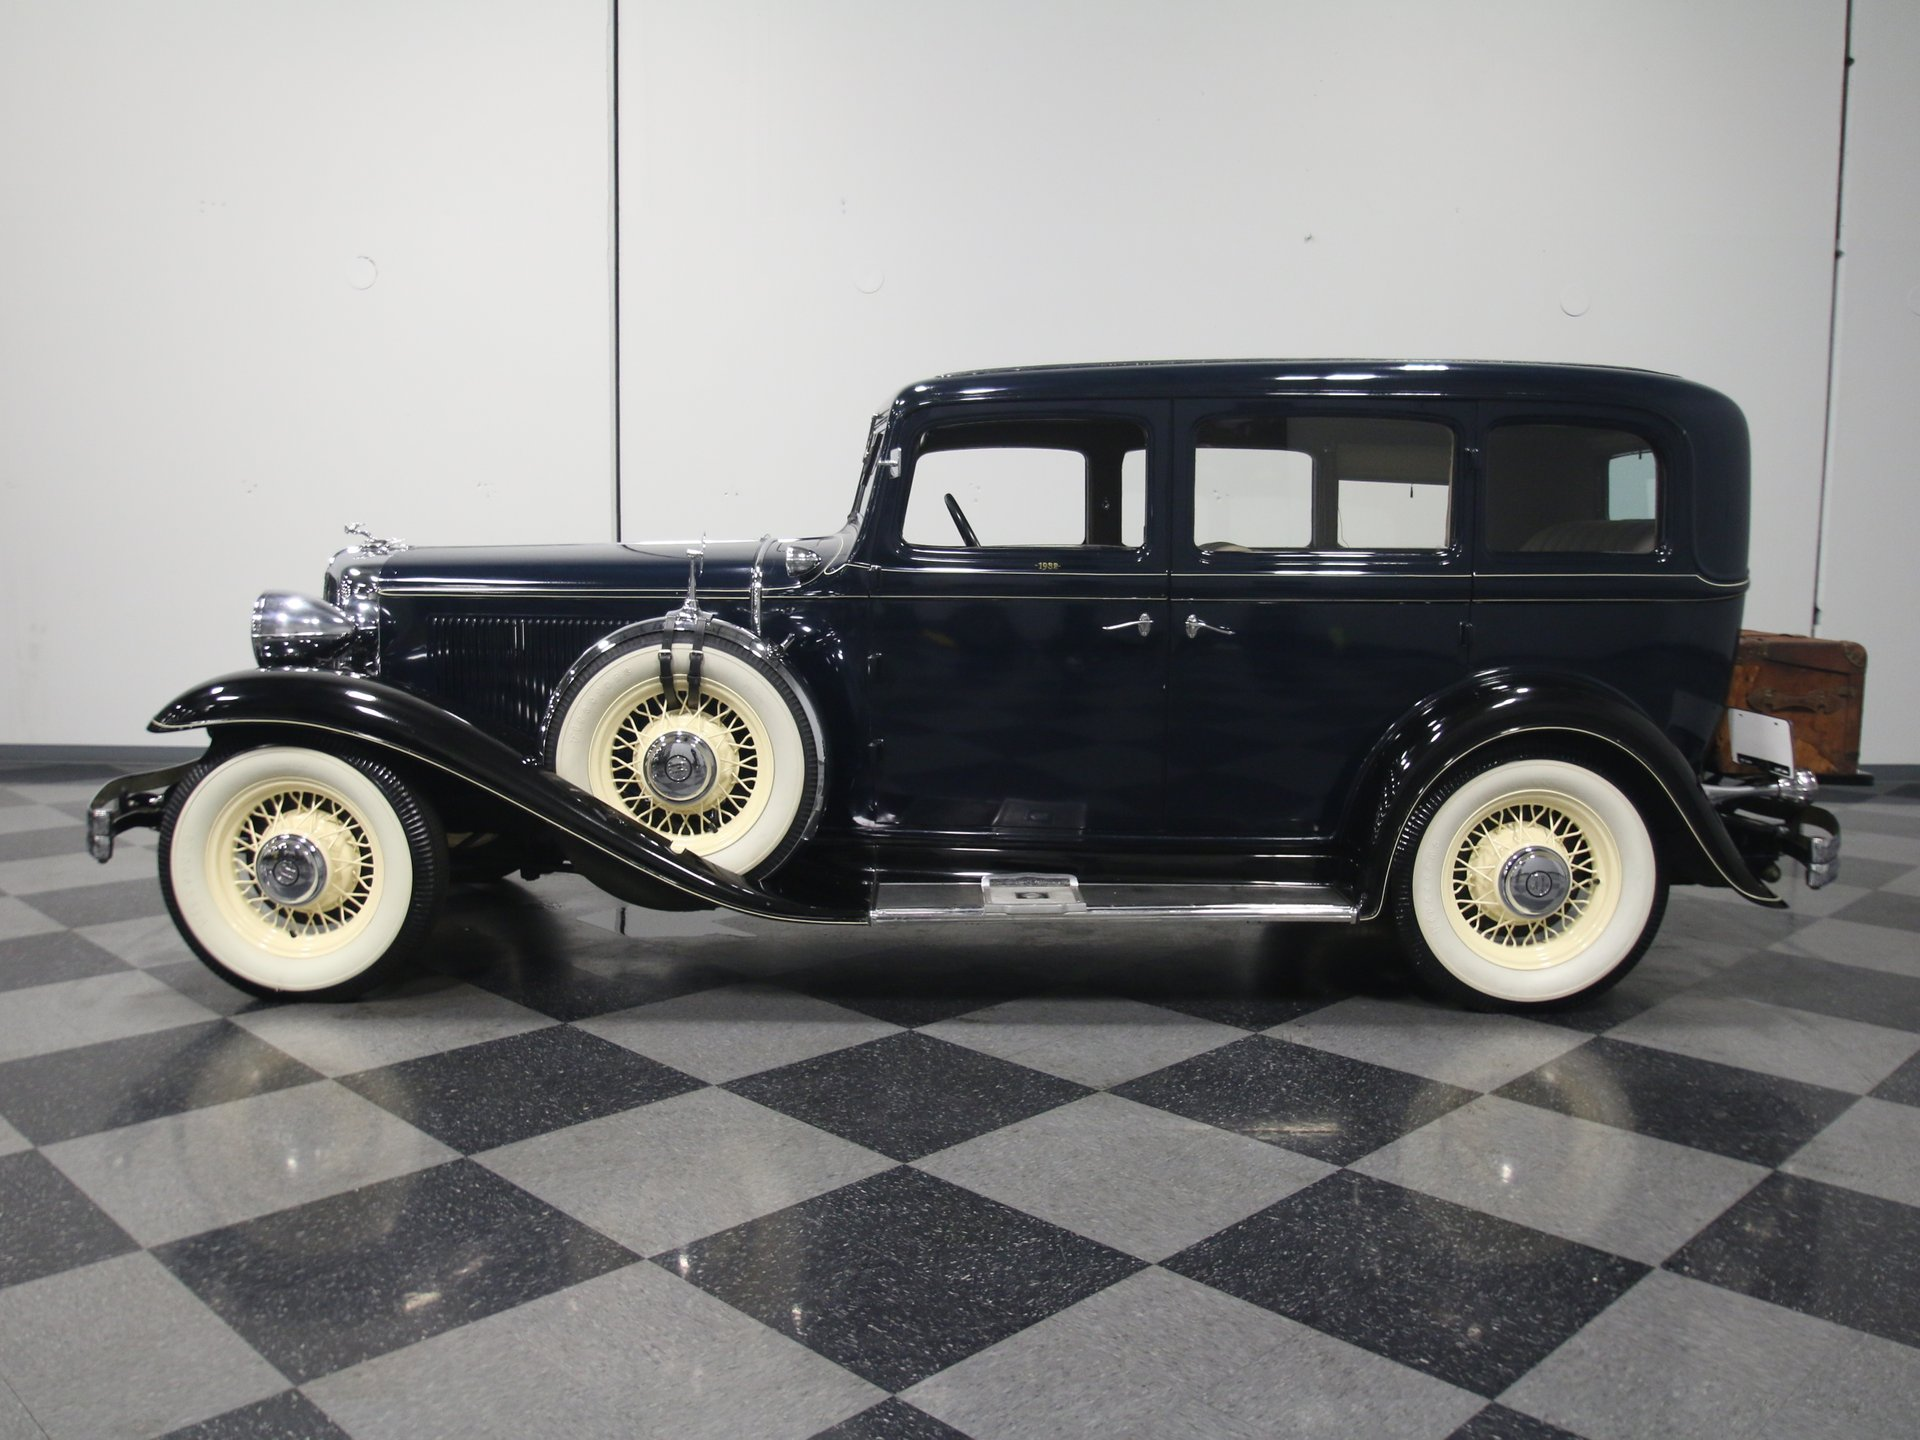 1932 chrysler cp8 touring sedan